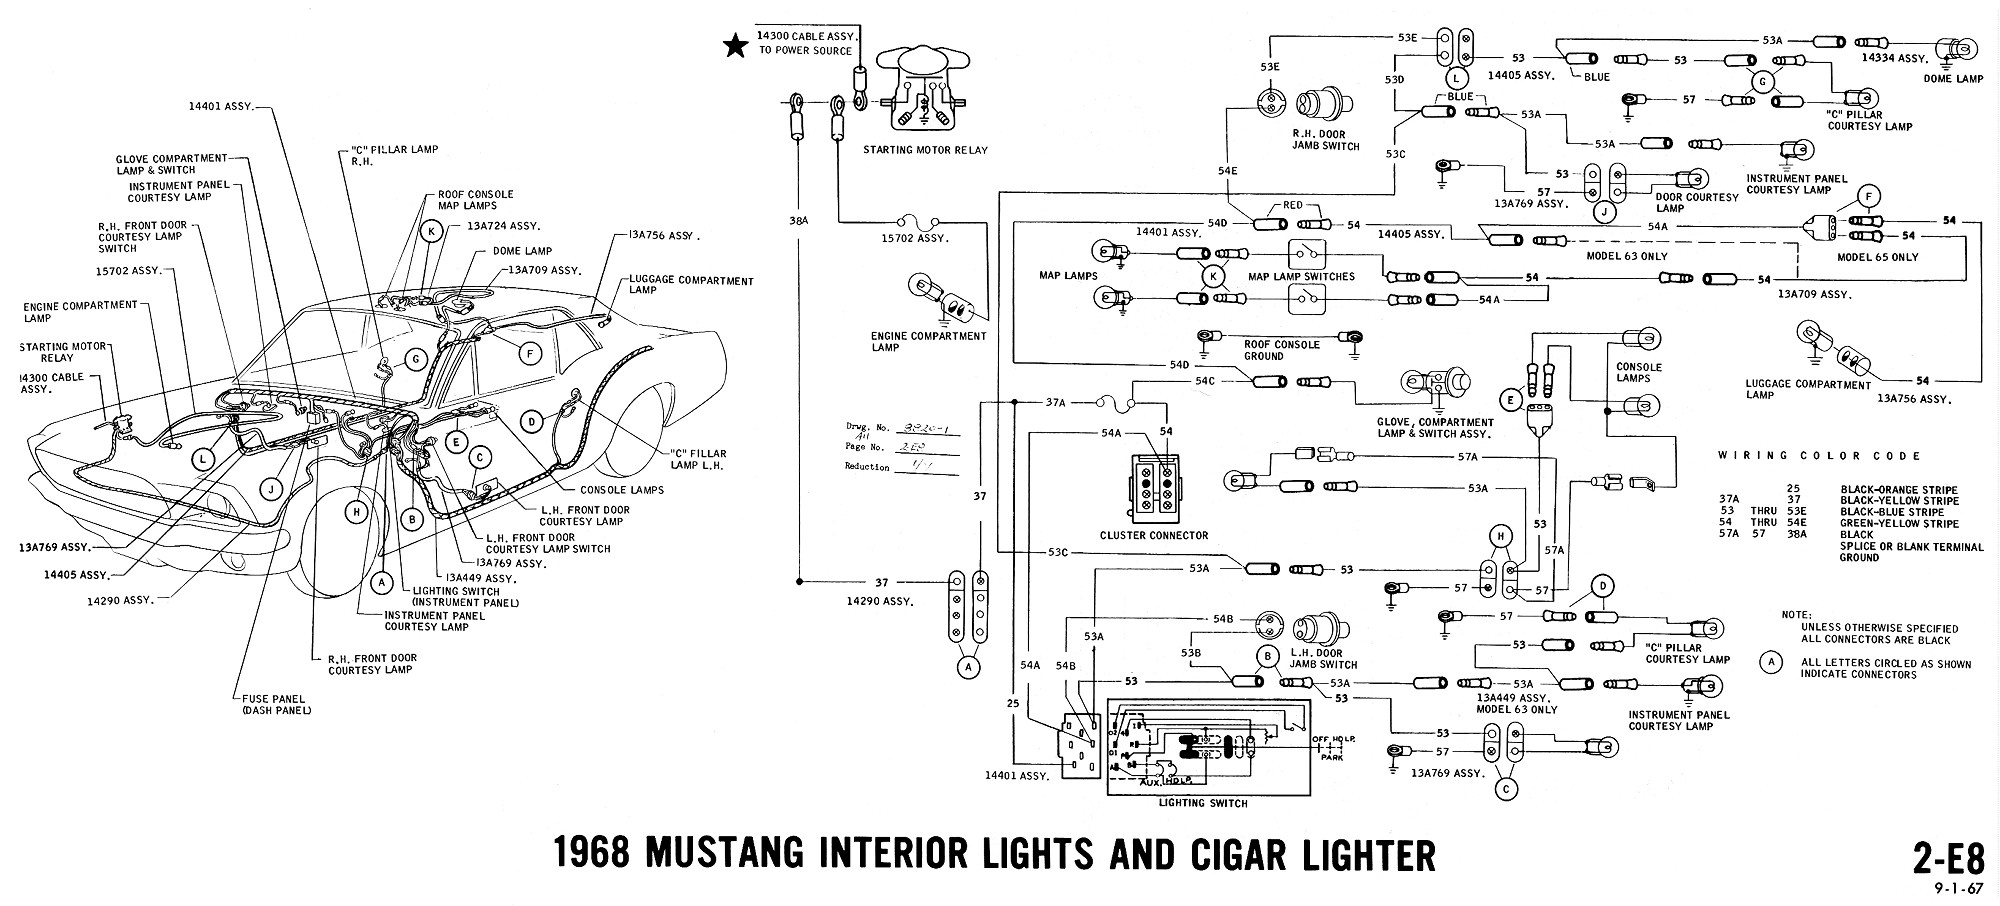 mustang fuse box 1968 electrical wiring diagrams 1990 mustang fuse panel diagram 1968 mustang fuse panel [ 2000 x 906 Pixel ]